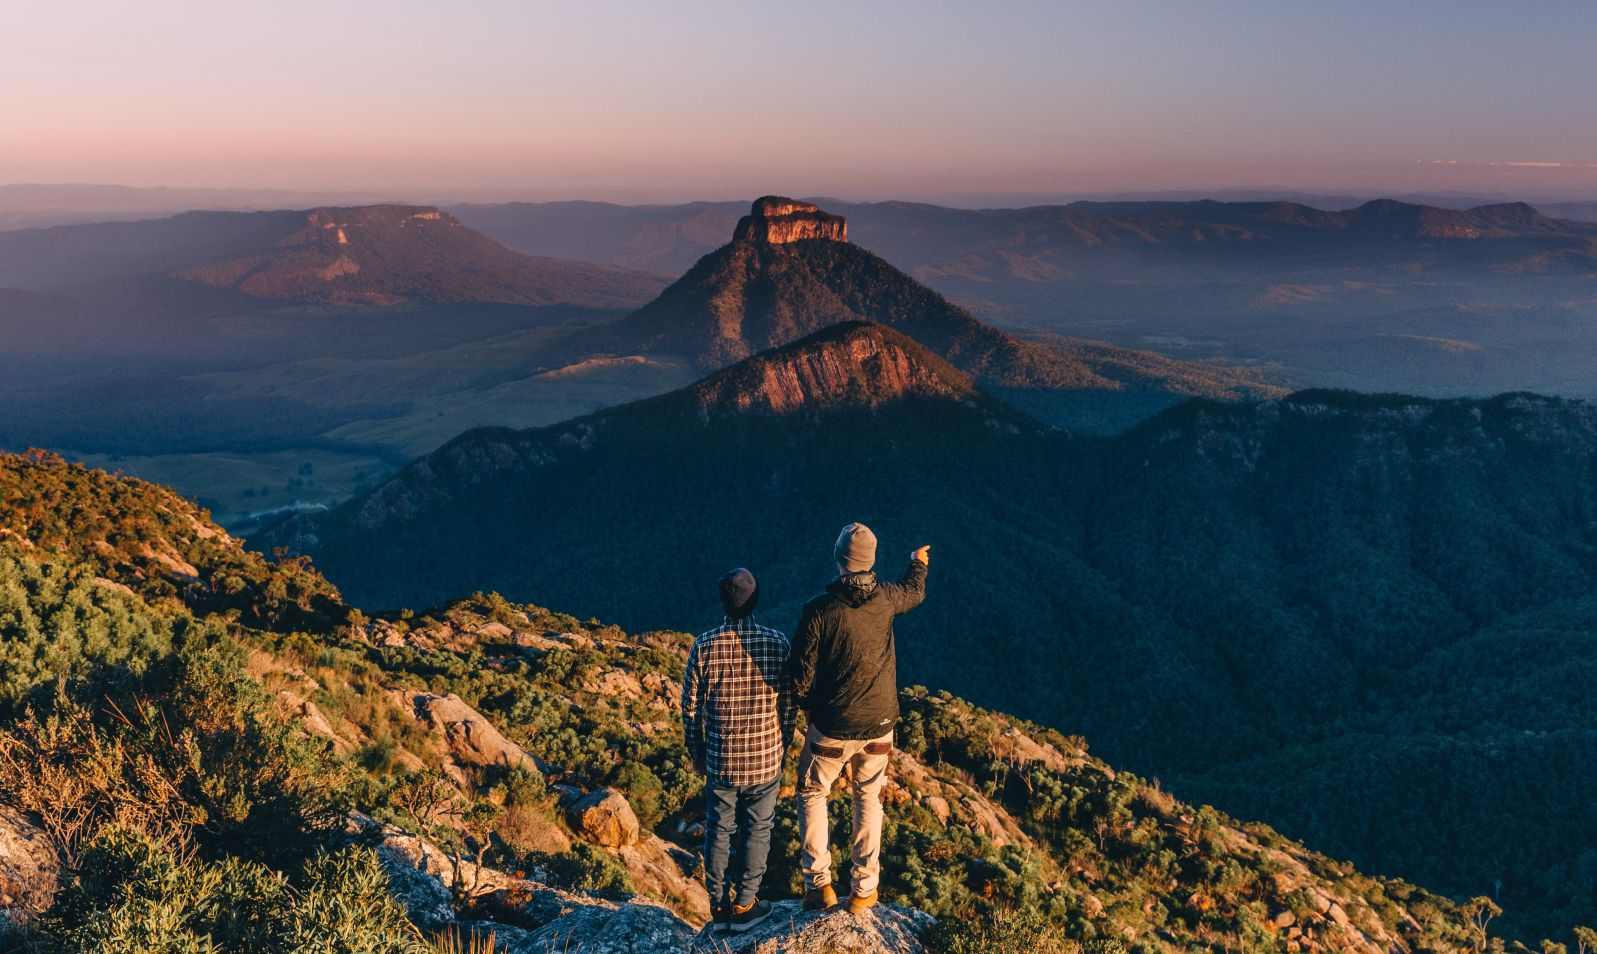 Queensland's national parks will spoil hikers with their diversity and spectacular landscapes. Here are some of the best guided wilderness walks from across the state.